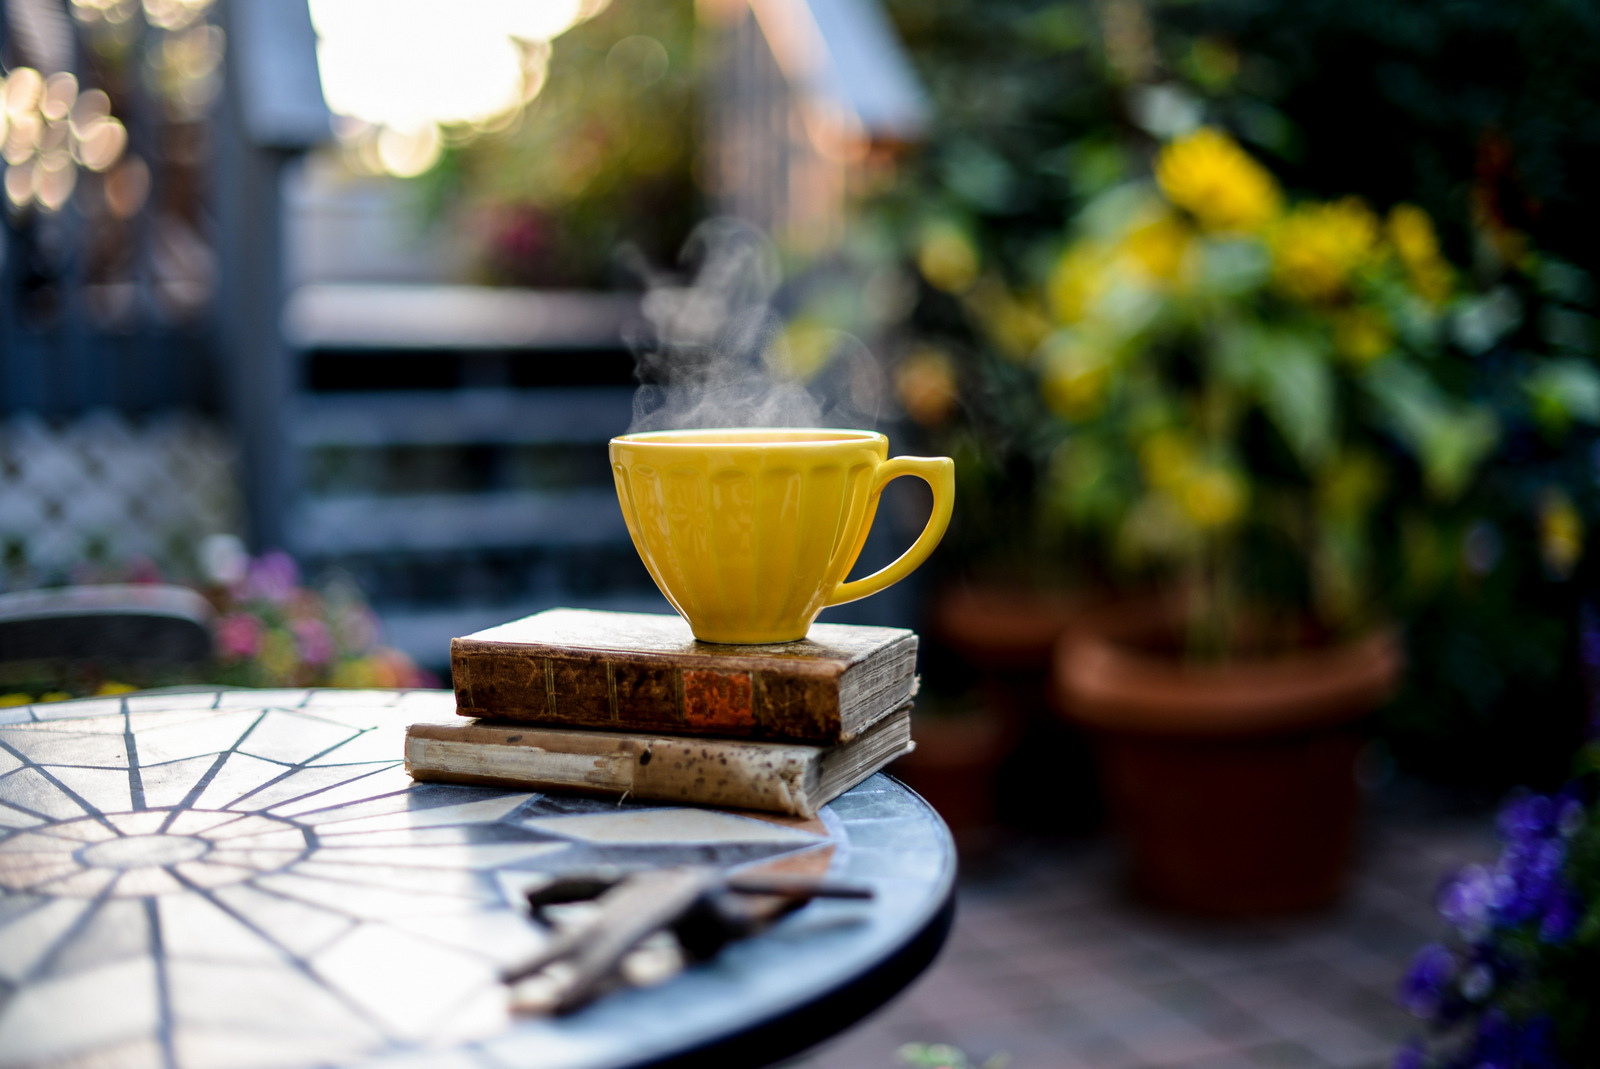 yellow teacup and steam